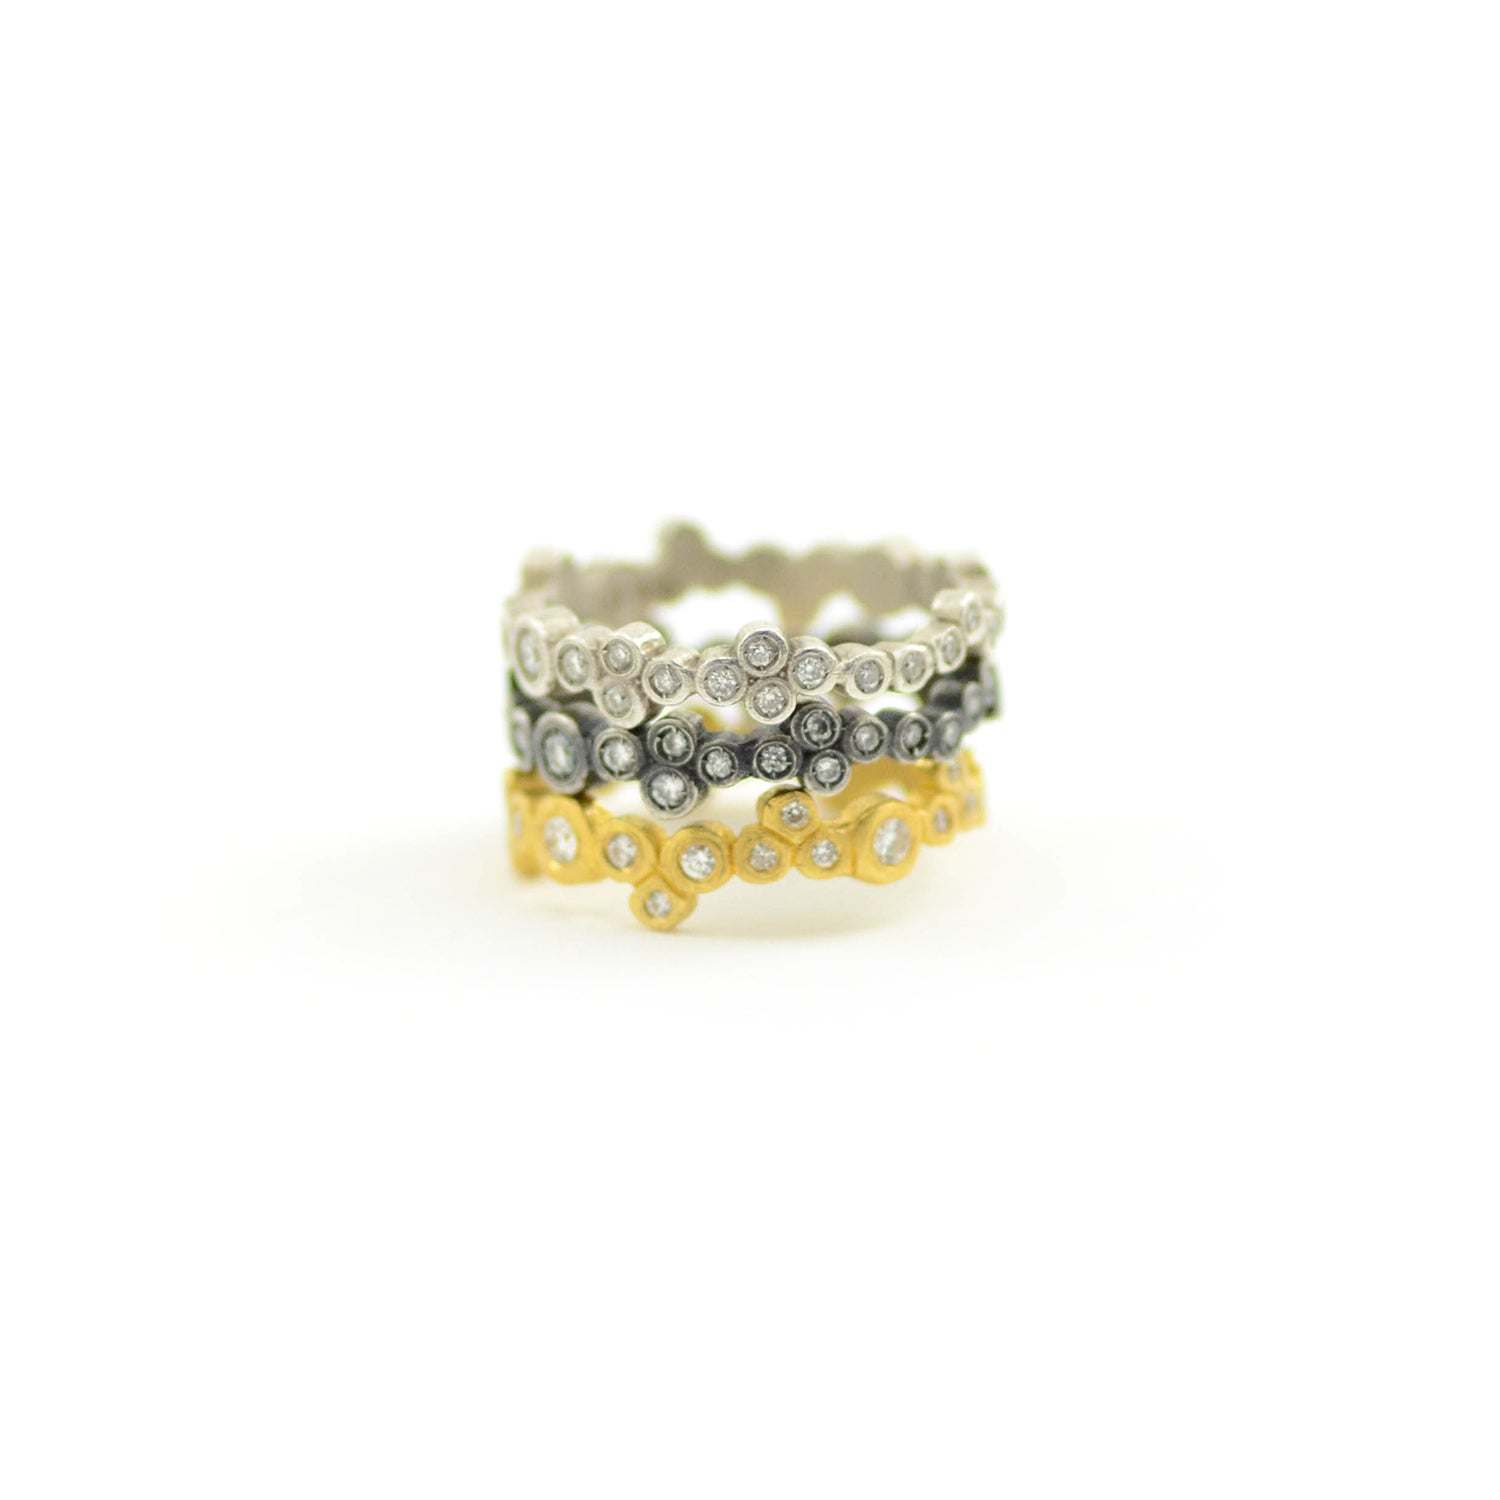 Lika Behar Ring Dylan Stackable Bands 24 Karat Yellow Gold Matte Oxidized Sterling Silver